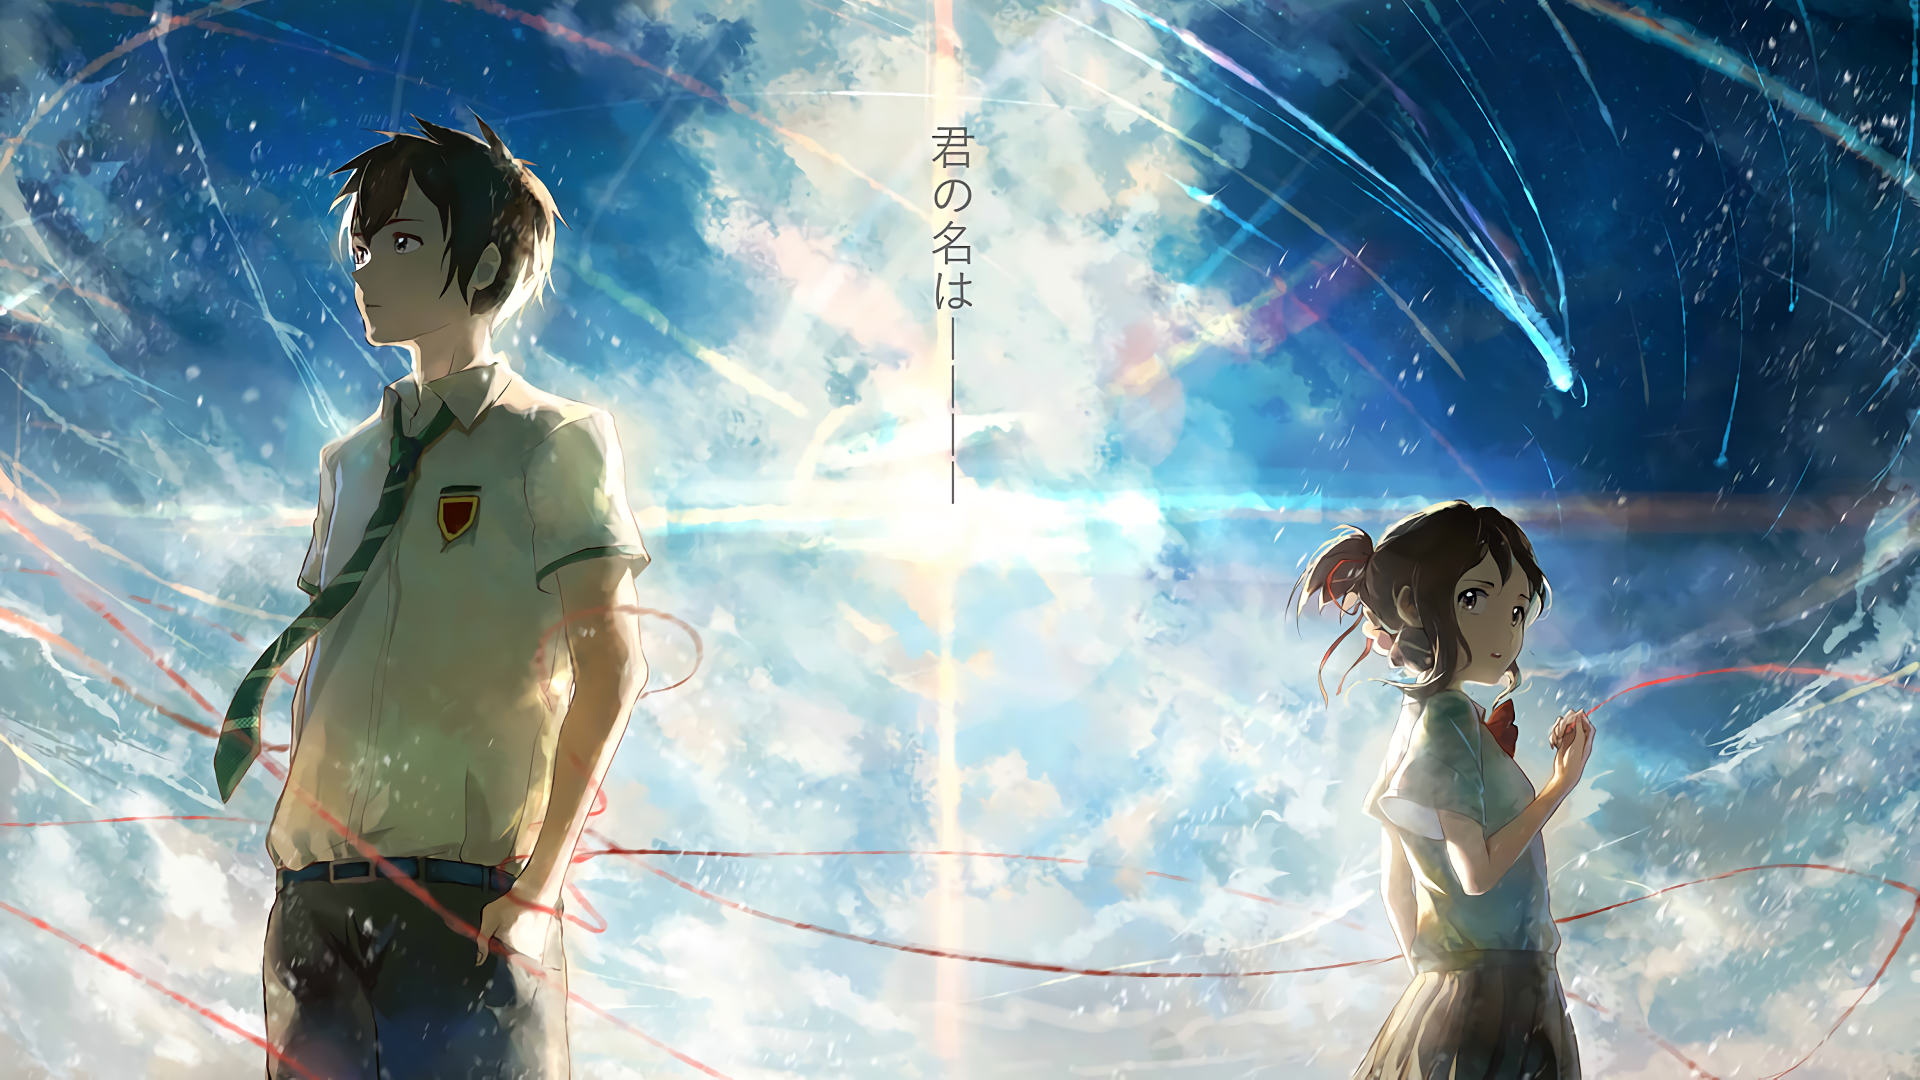 Hd wallpaper name - Anime Your Name Mitsuha Miyamizu Taki Tachibana Kimi No Na Wa Wallpaper